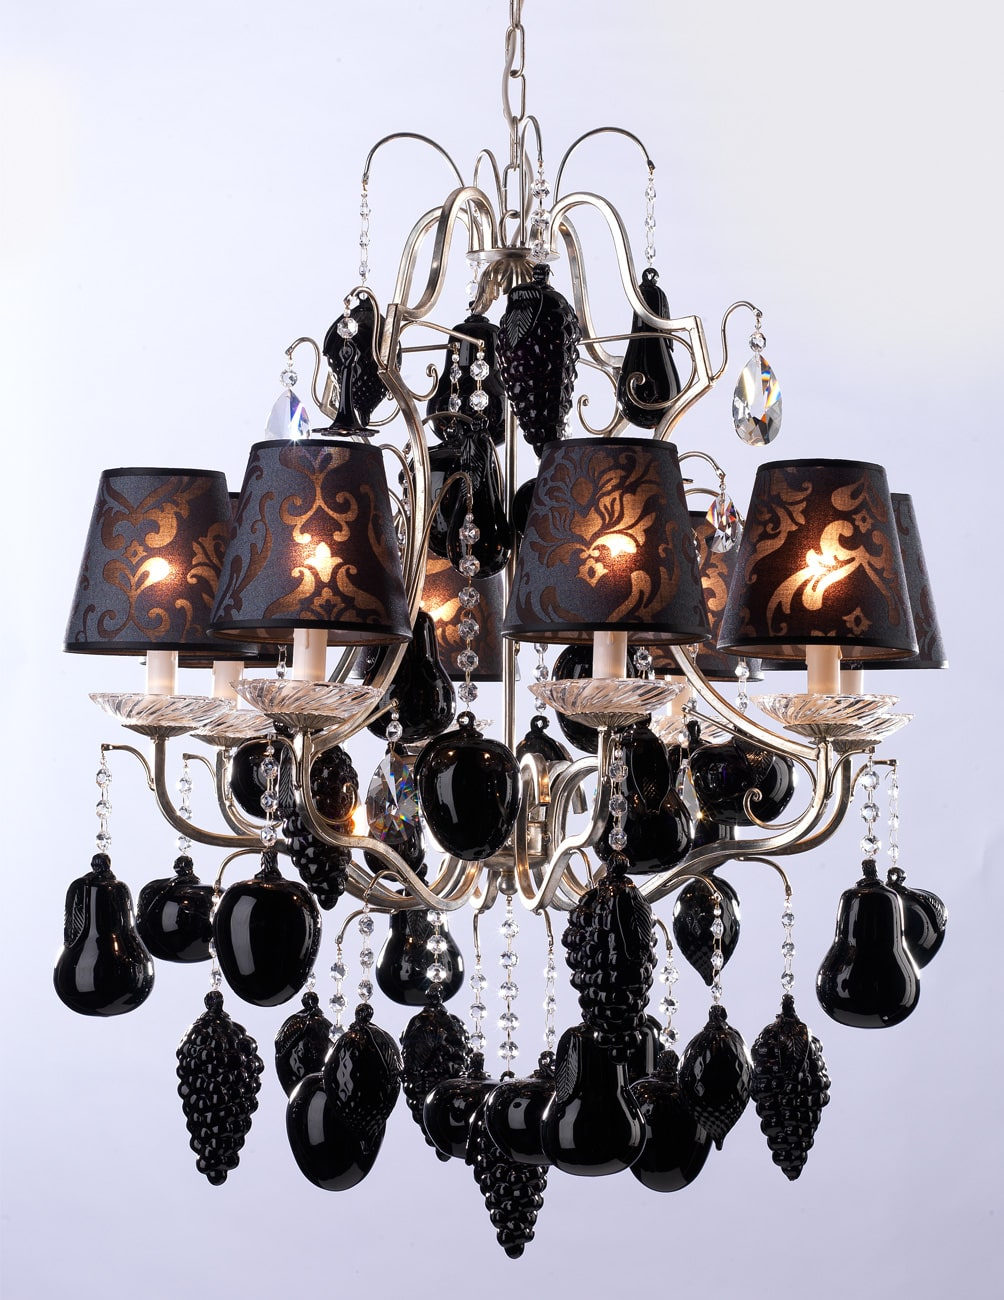 decorative lighting chandeliers 40